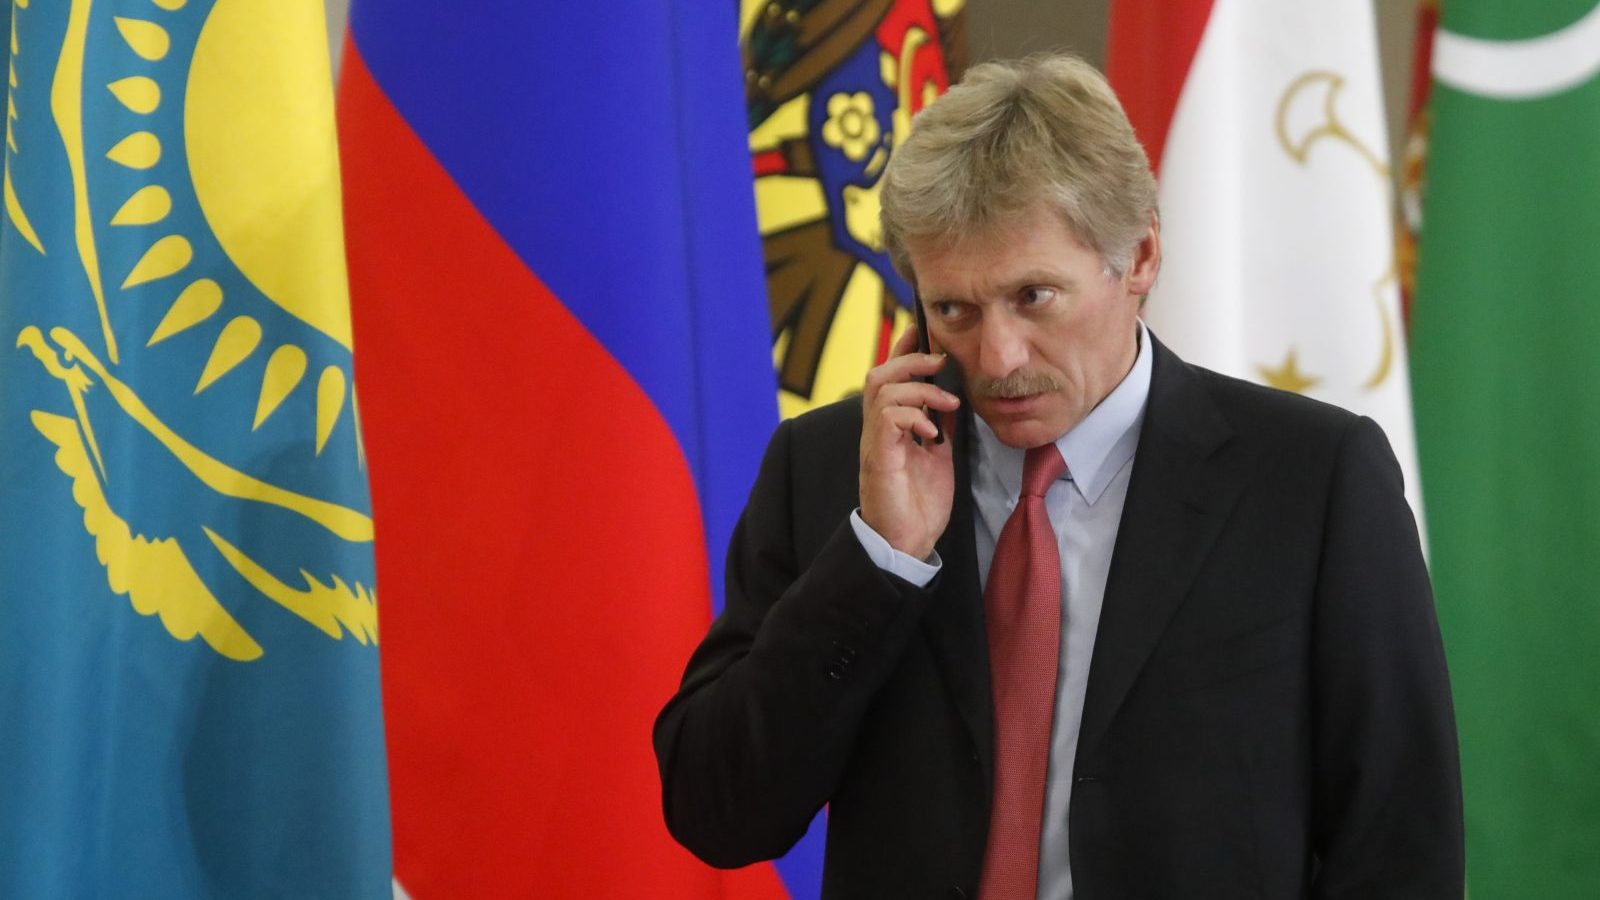 Russia says Serbian Ties not Threatened by Video 'Incident' | Balkan Insight